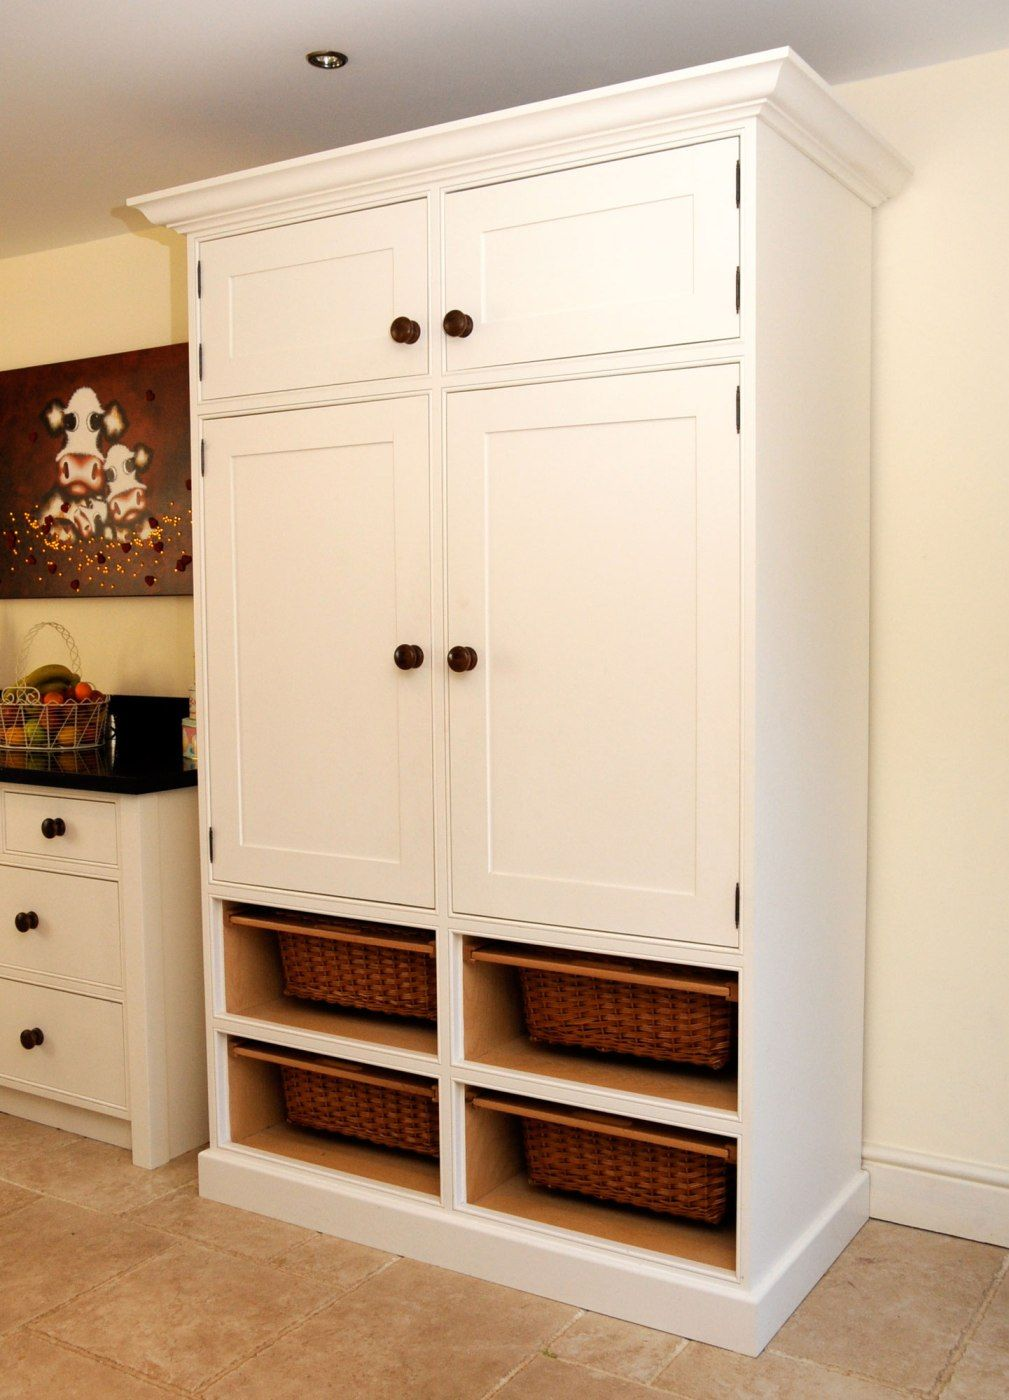 Free Standing Kitchen Storage Ideas Part - 18: Lowes Free Standing Kitchen Cabinets